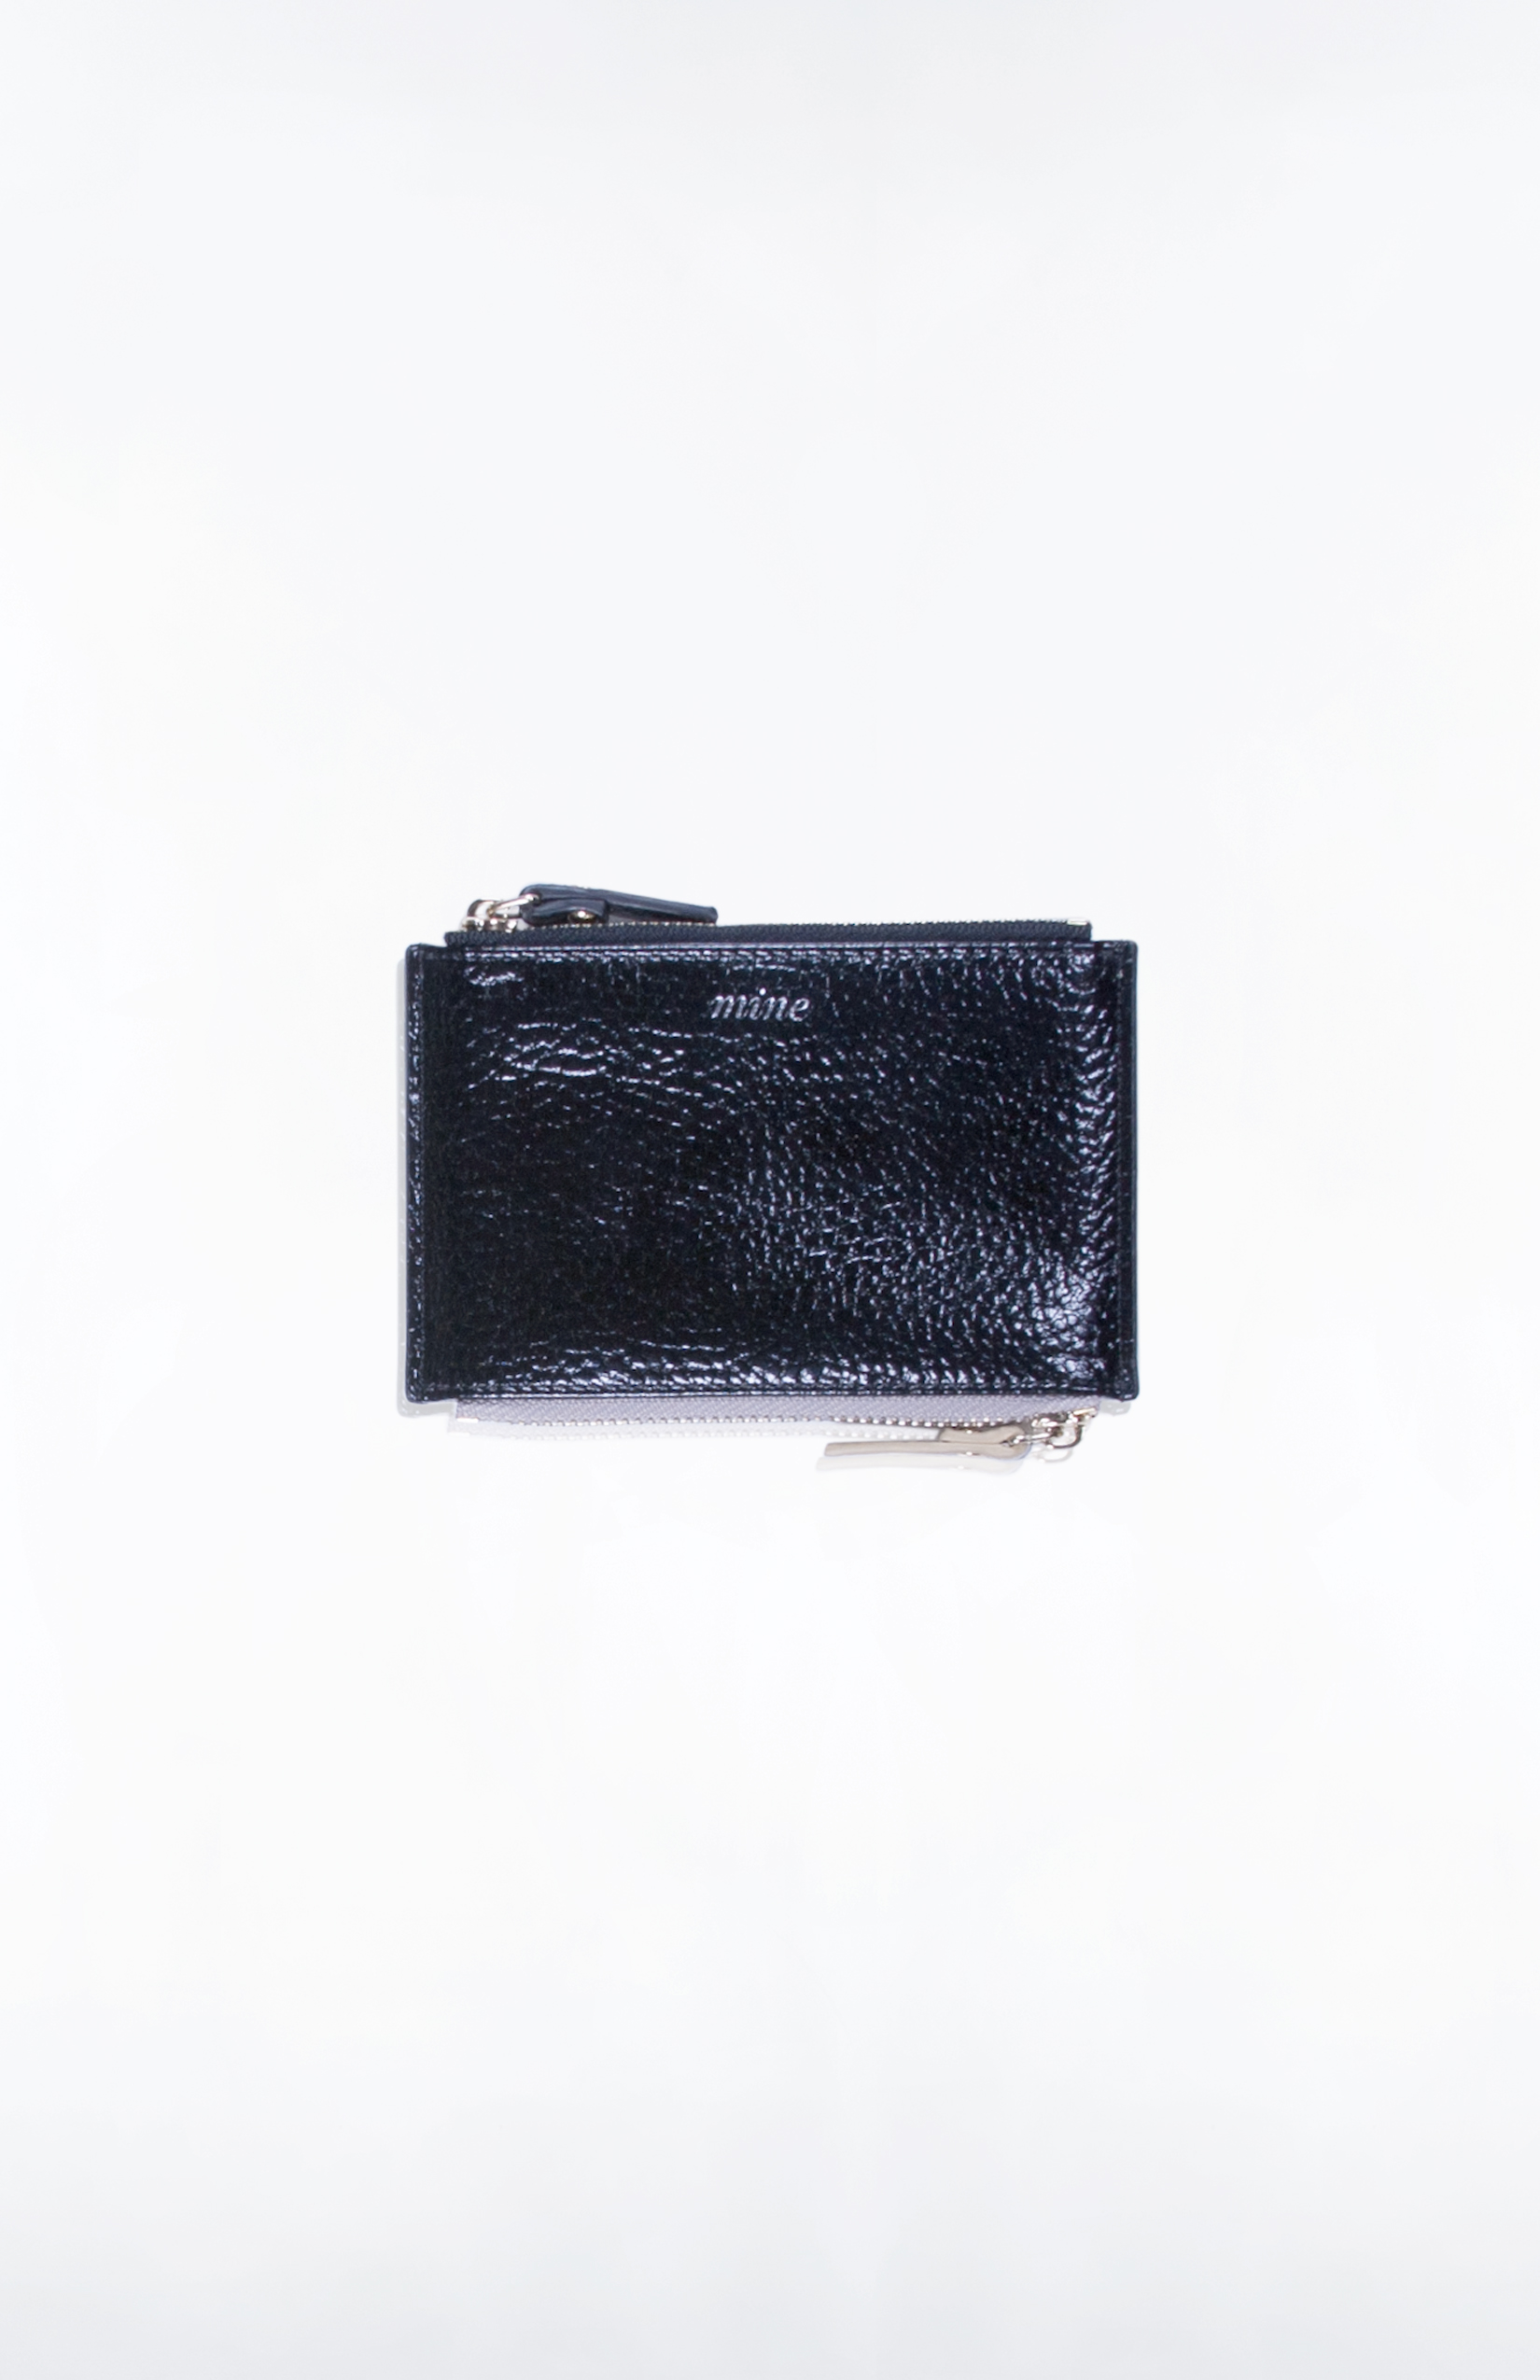 DUALITY CARD CASE (Mine/Yours)- Gunmetal + Black PU